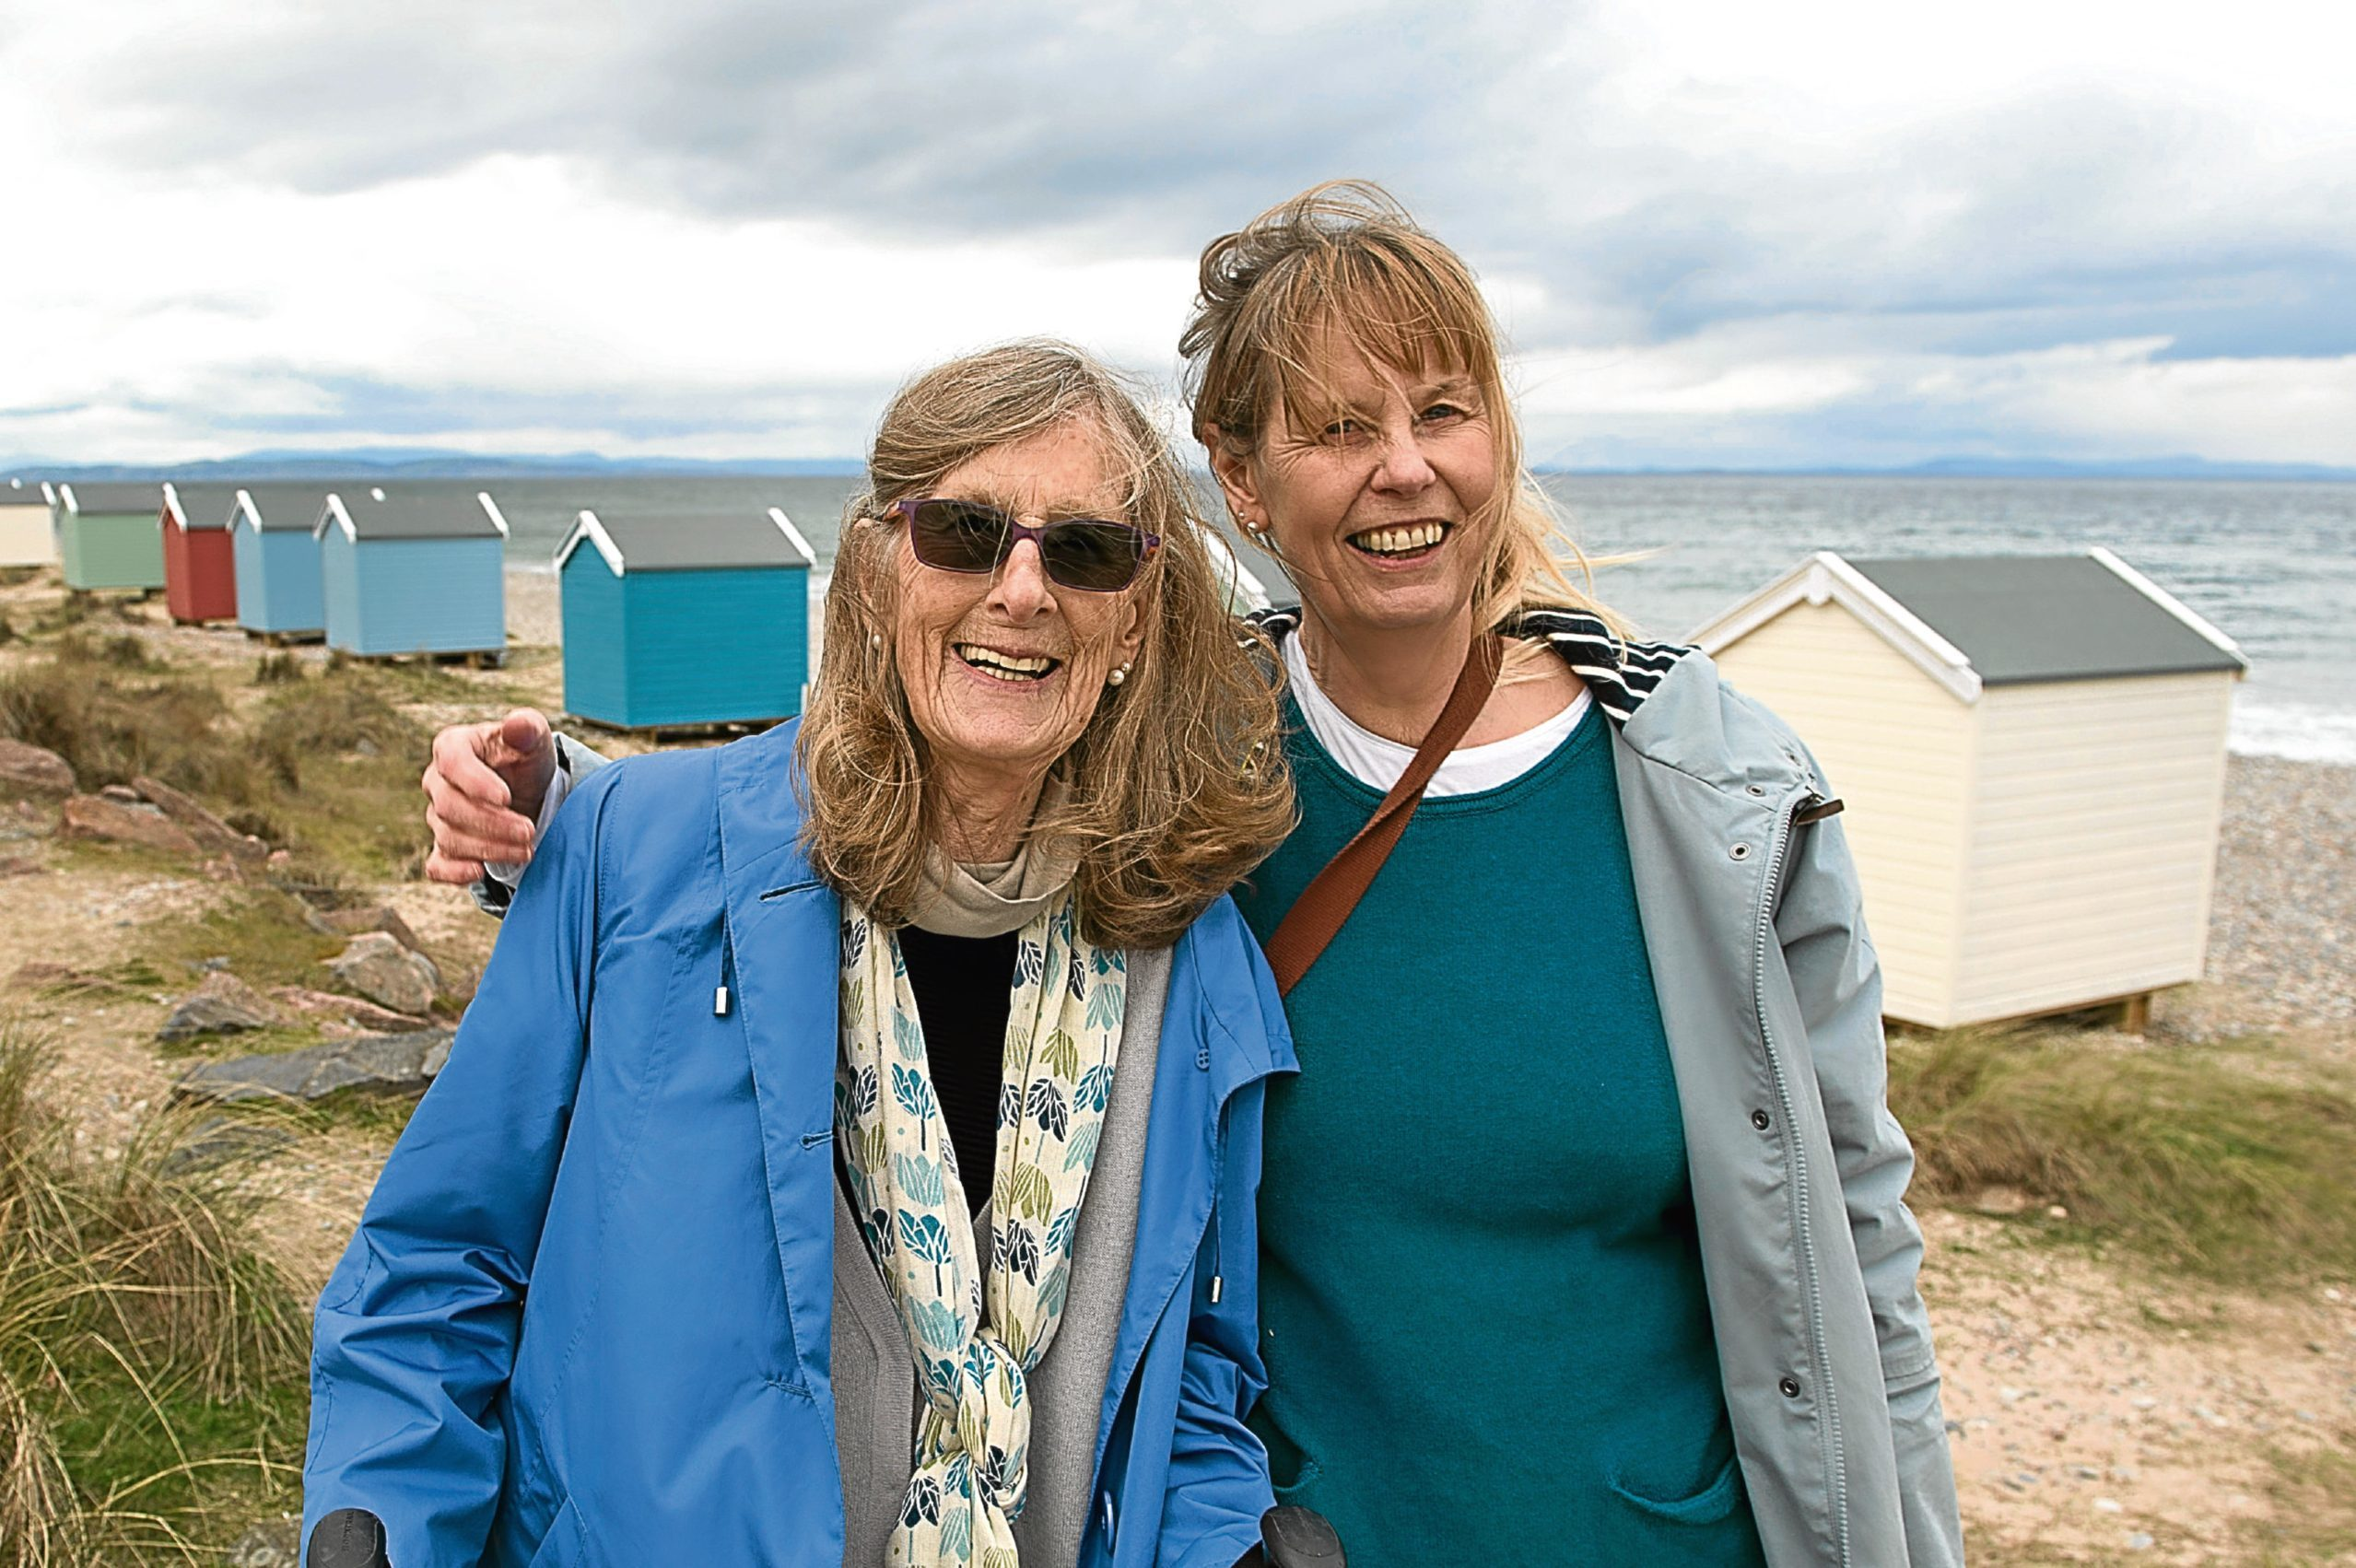 Dr Jane Miller, 60, and her 82-year-old mum Marina Miller with their £ 25,000 beach hut in Findhorn on the Moray coast (Trevor Martin)